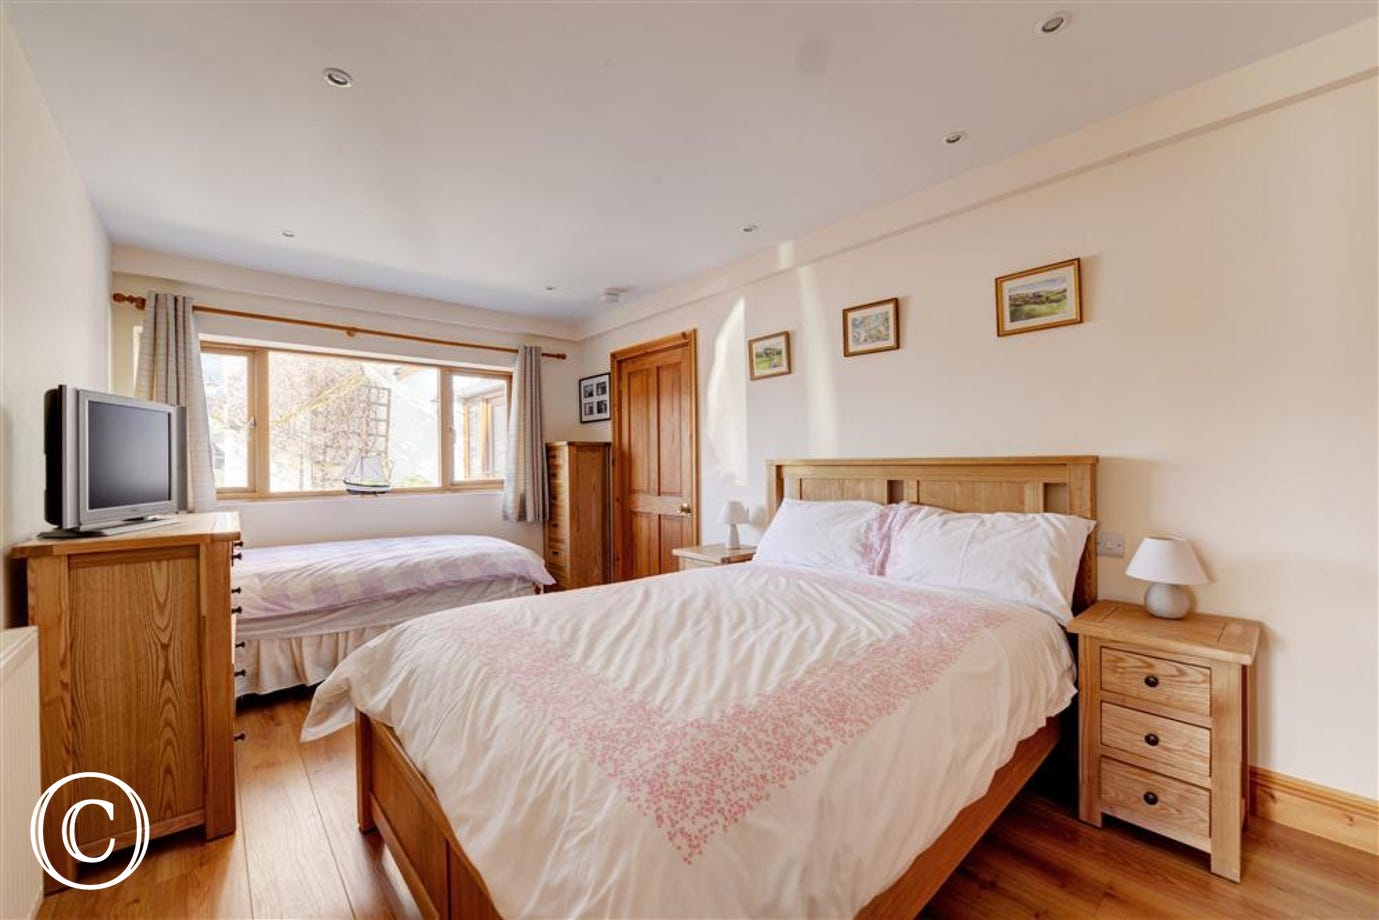 Double bedded room with a double and a single bed.